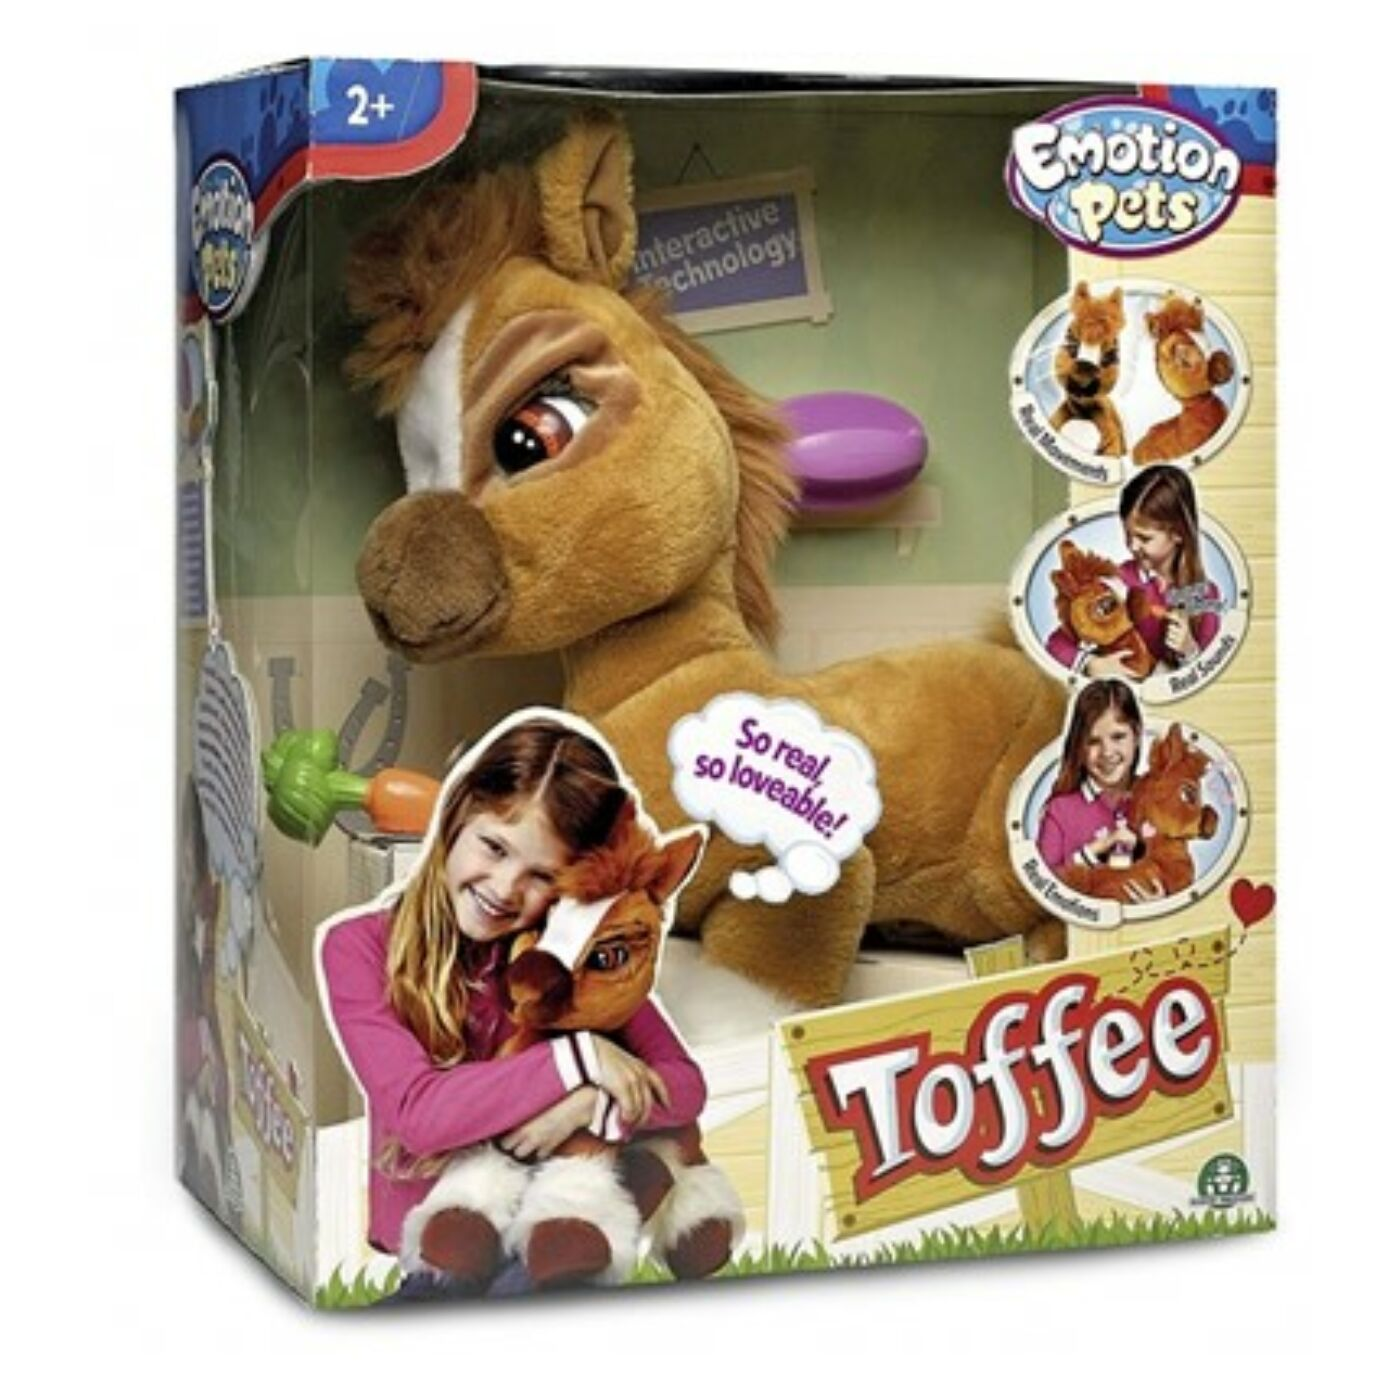 Toffee